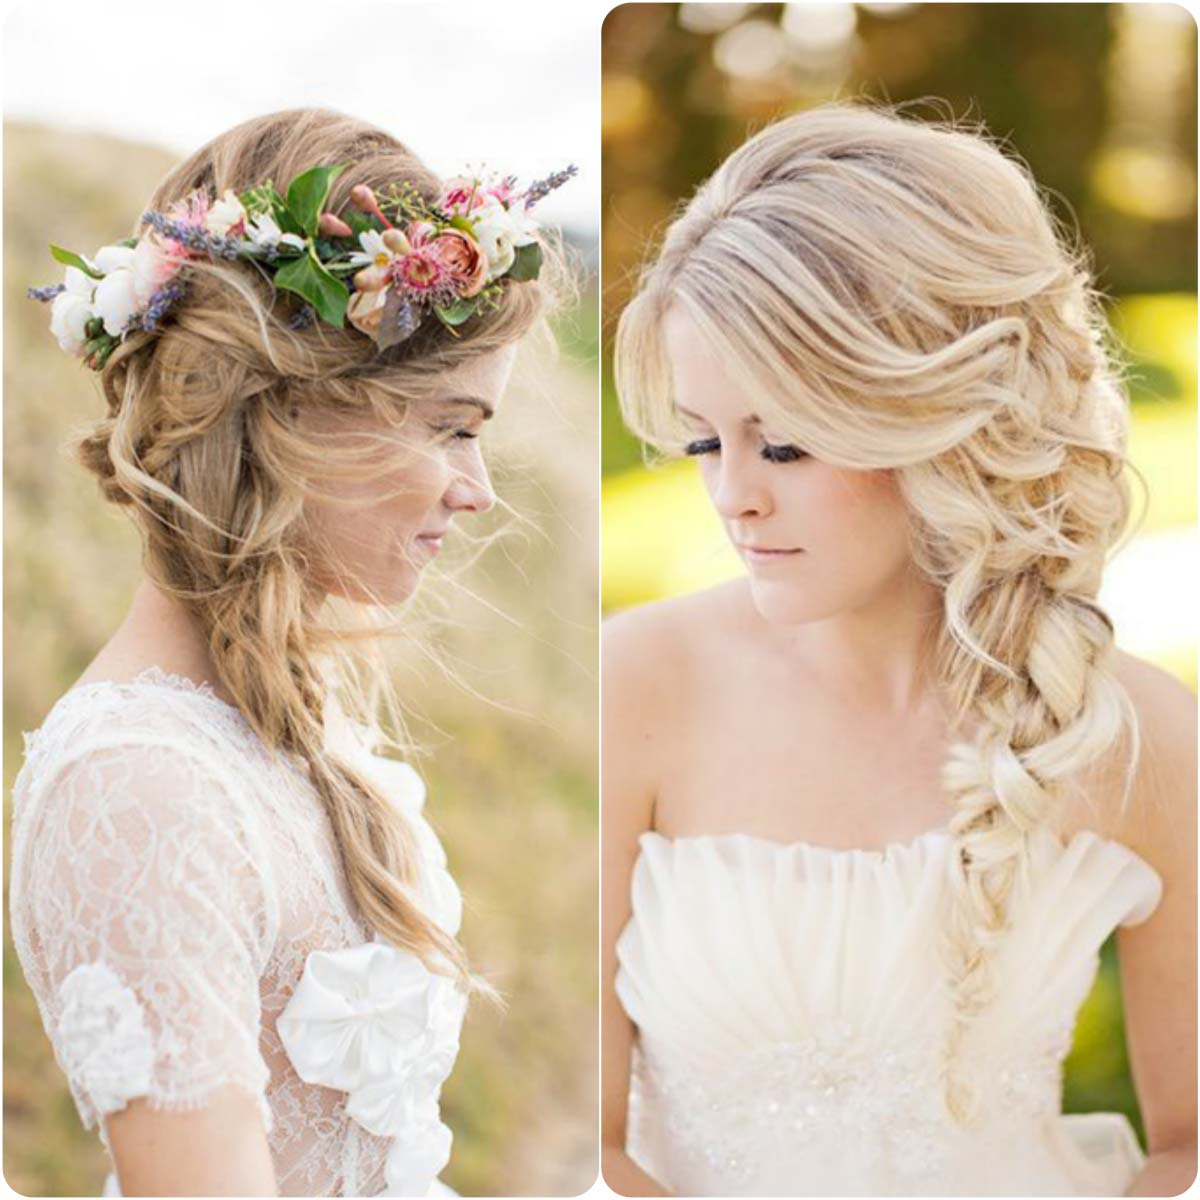 20 fishtail braided hairstyles